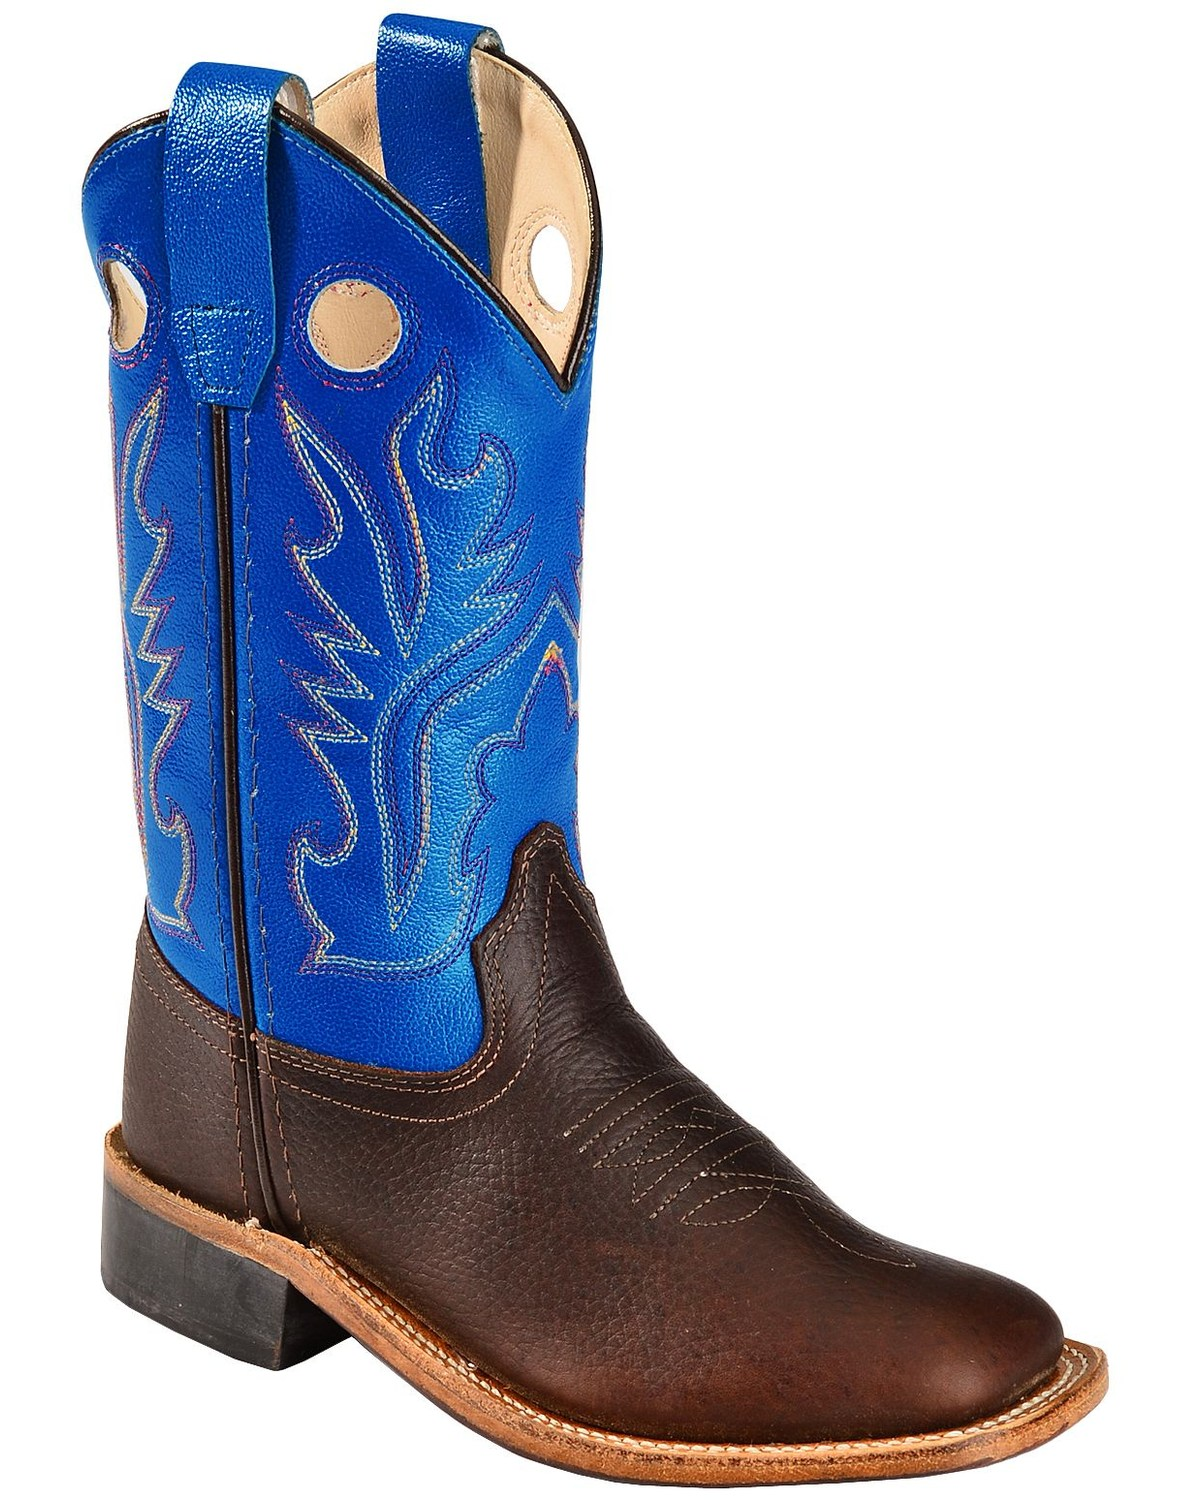 Old West Children's Thunder Cowboy Boots | Boot Barn